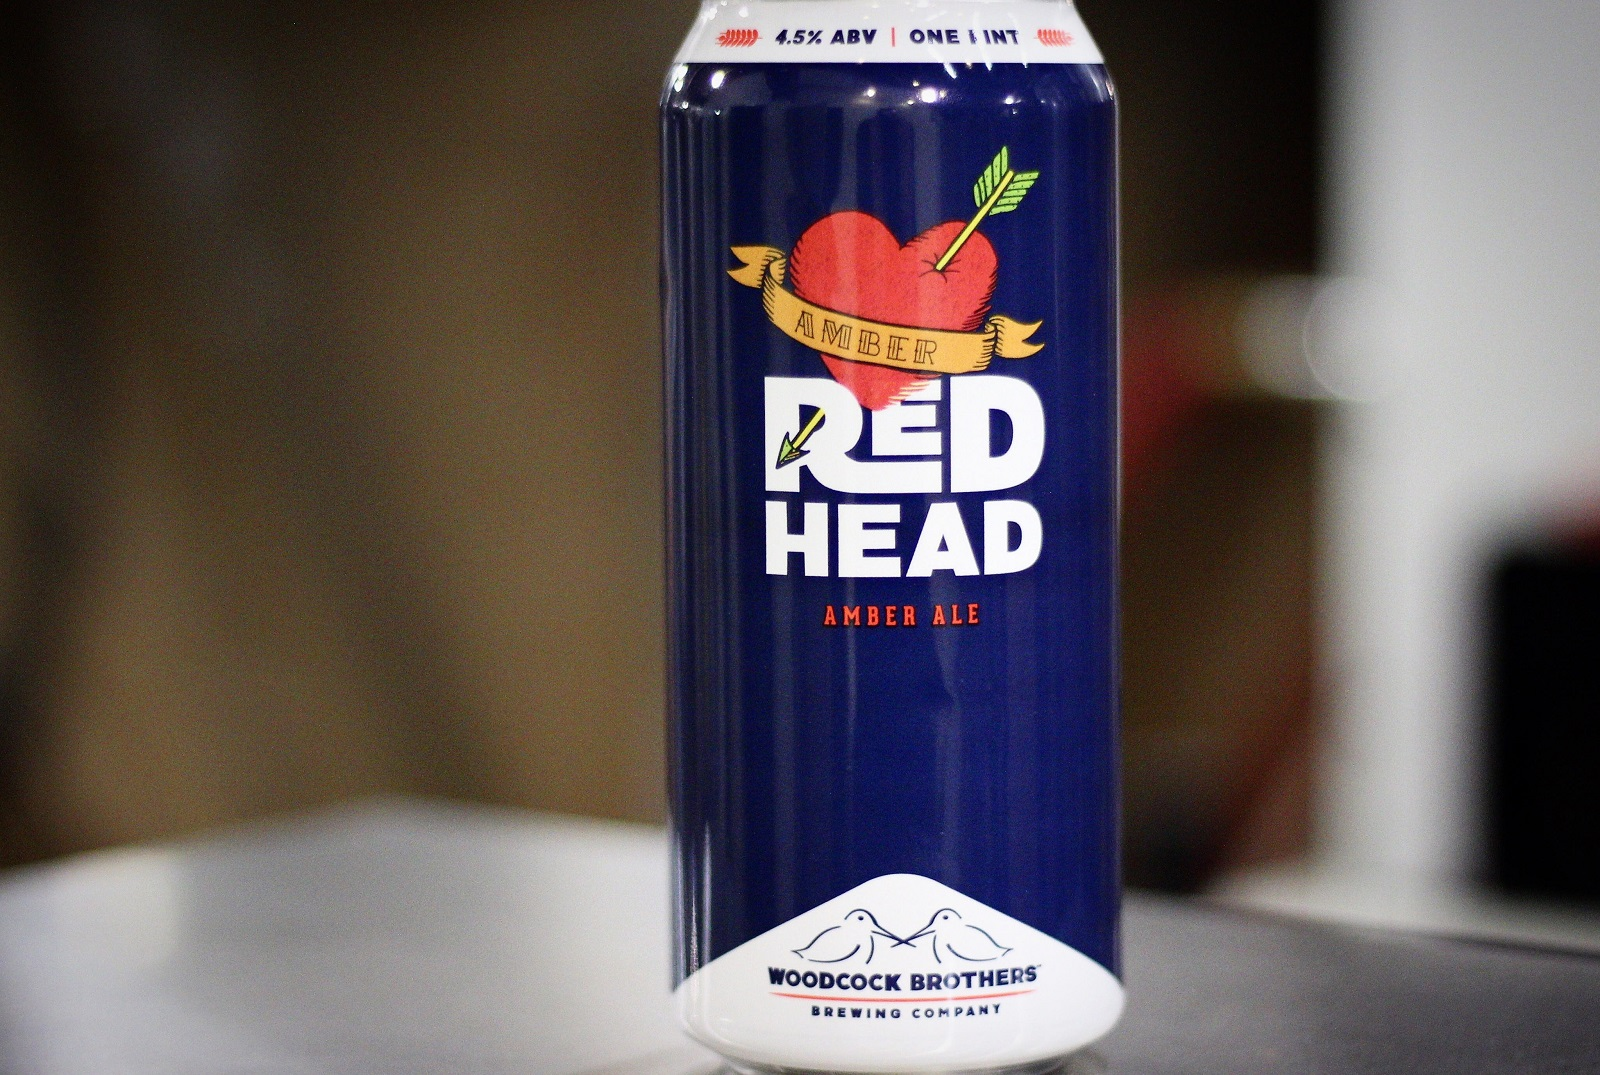 A new release of Red Head ale by Woodcock Brothers is part of this week's Beer Notes.